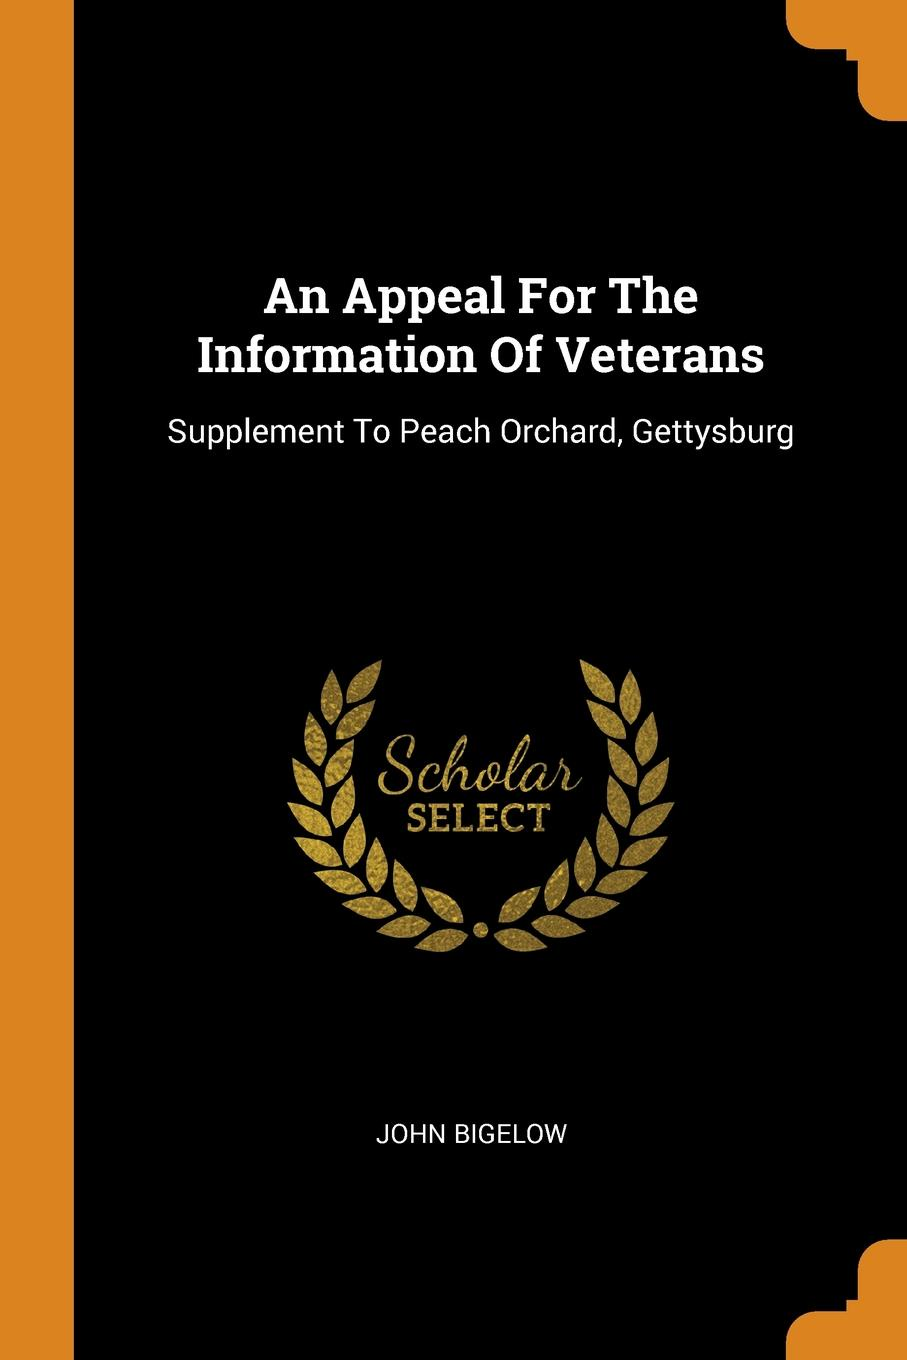 John Bigelow An Appeal For The Information Of Veterans. Supplement To Peach Orchard, Gettysburg